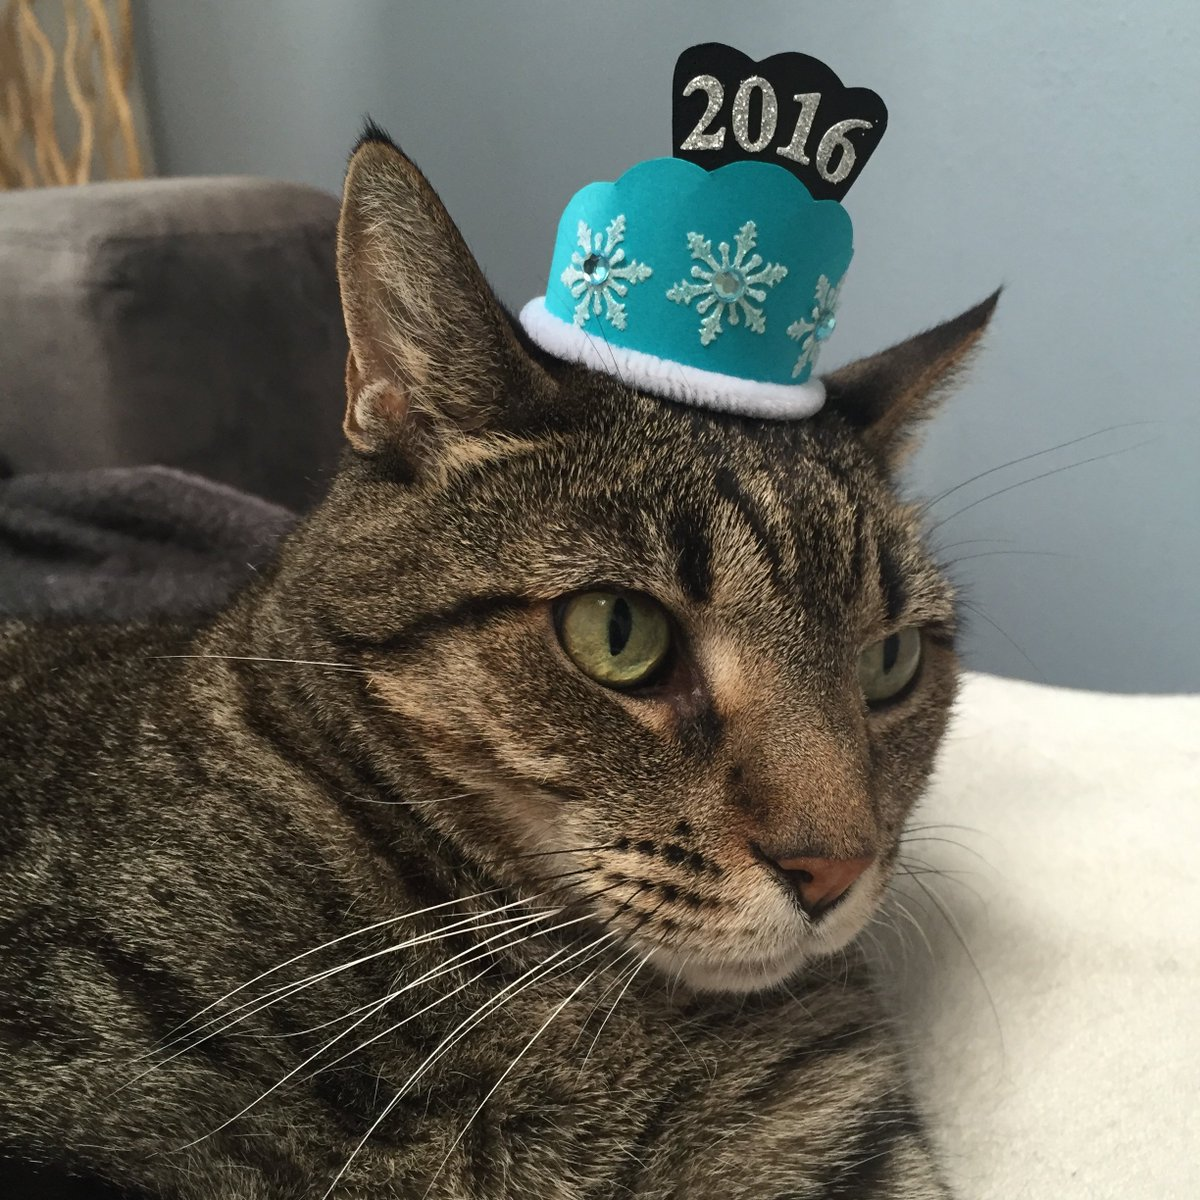 LATEST GIVEAWAY!https://t.co/WDep65ZpBP Win litter for a year and more! #NYETidyCatsHats @Purina #sponsored https://t.co/hB4TzTJJbB